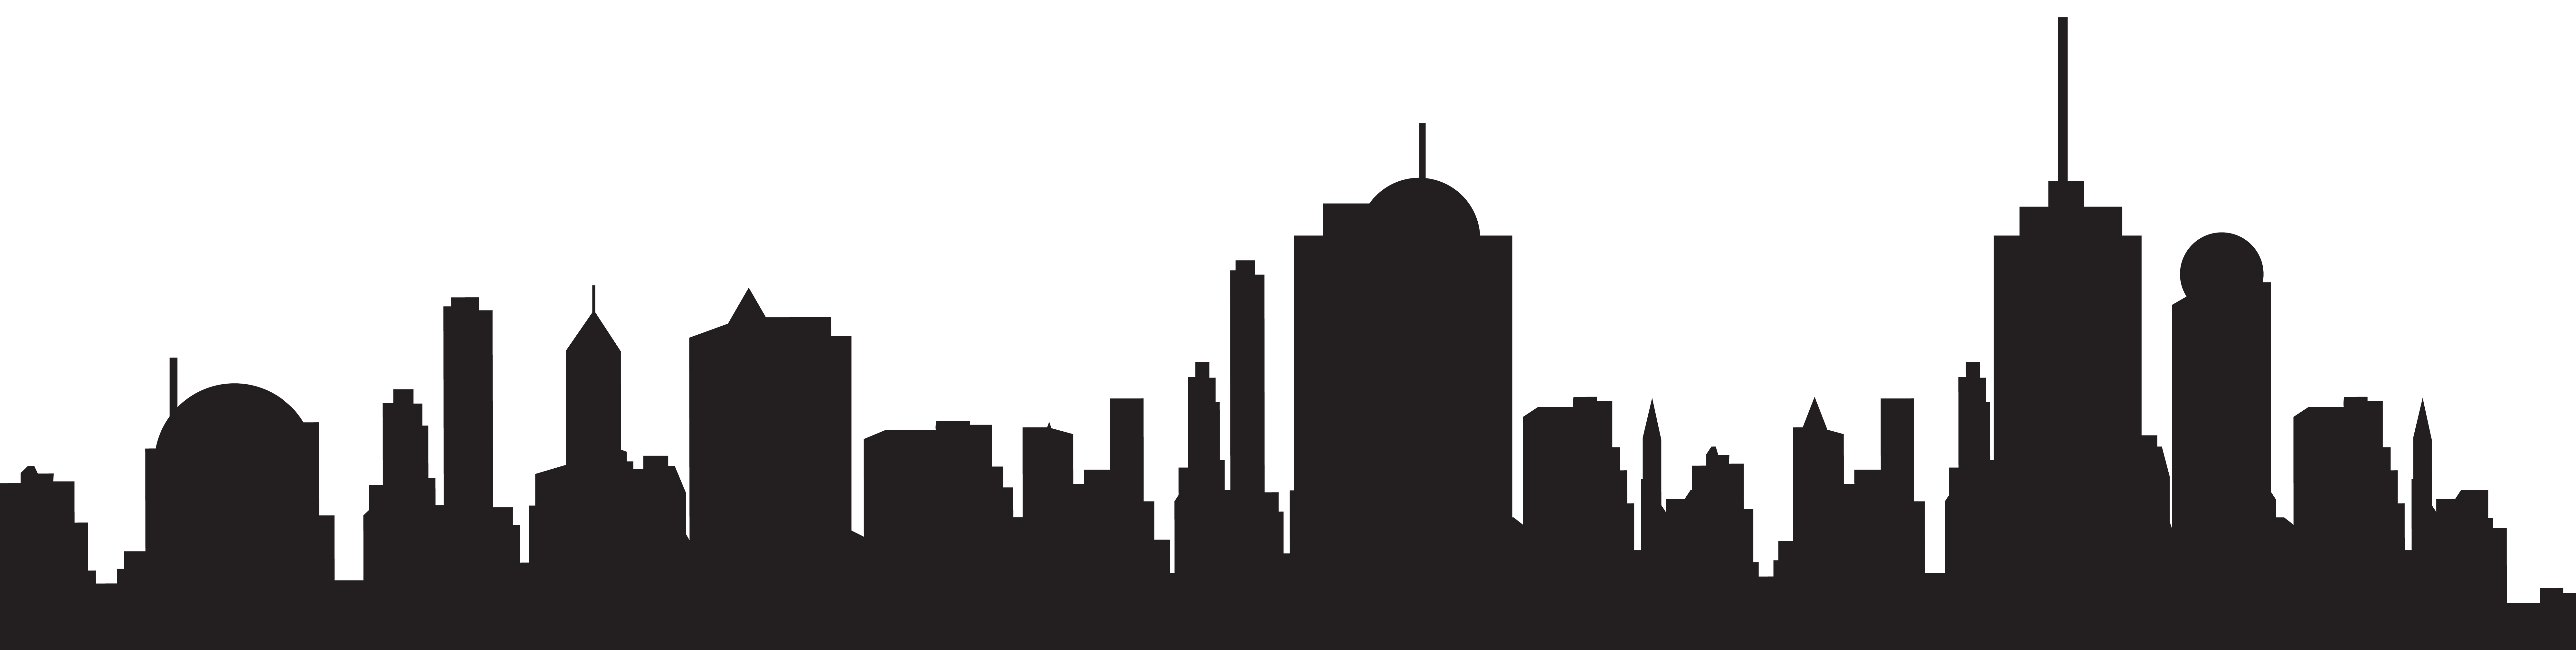 City silhouette png. Clip art gallery yopriceville